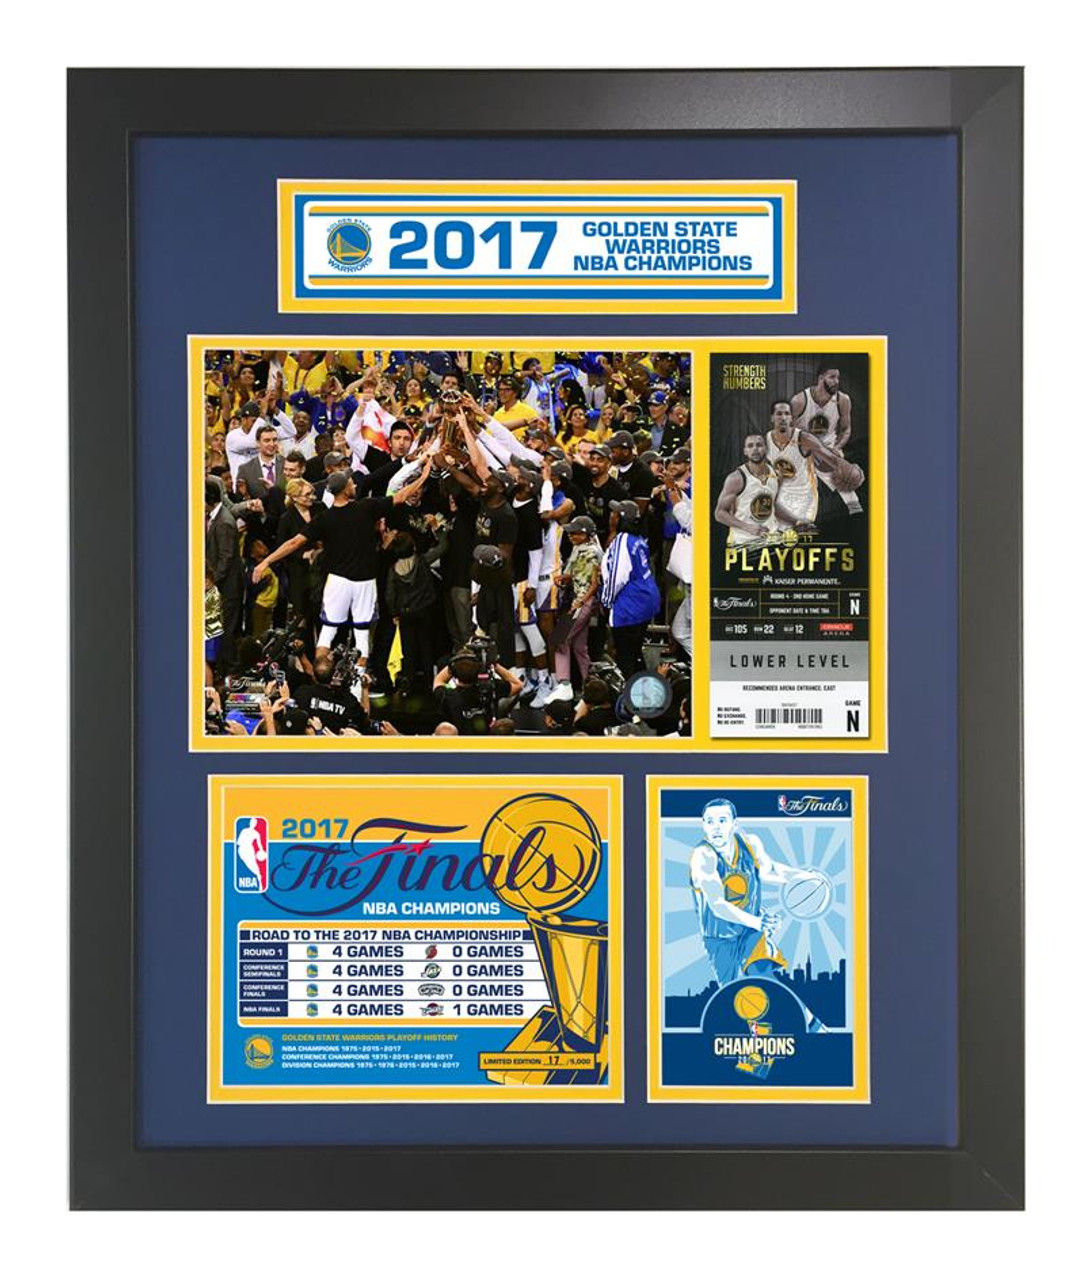 290db7d0c18 Golden State Warriors 2017 NBA Champions Framed Piece Signed by Steph Curry